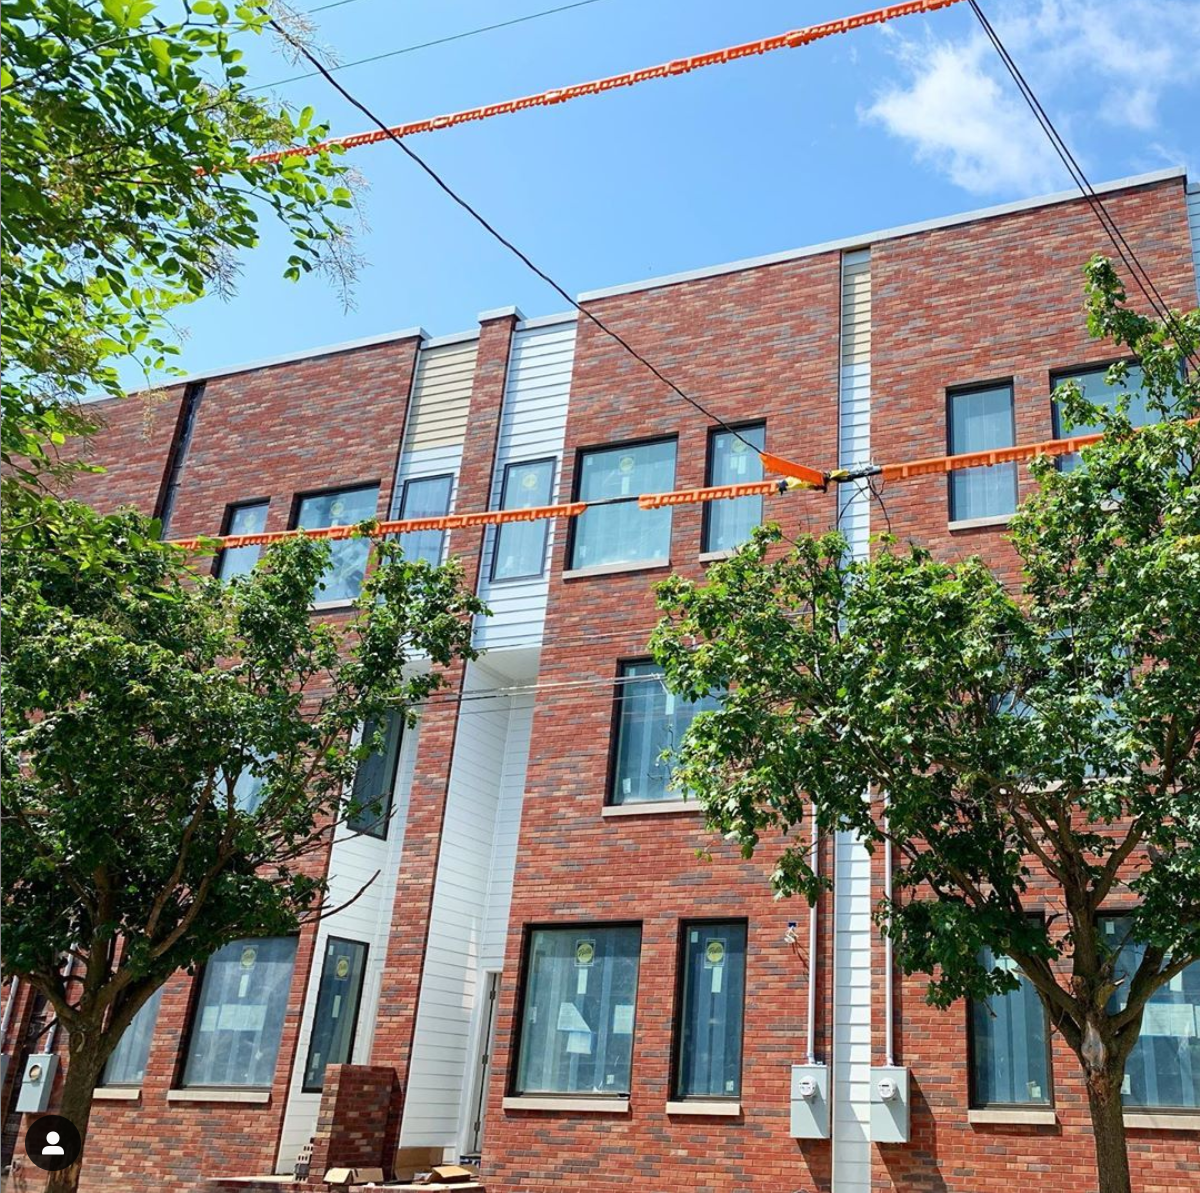 Residences at Susquehanna 19125 - 5 new homes located at 2322 E Susquehanna ave with pre-construction pricing still available in booming Fishtown.